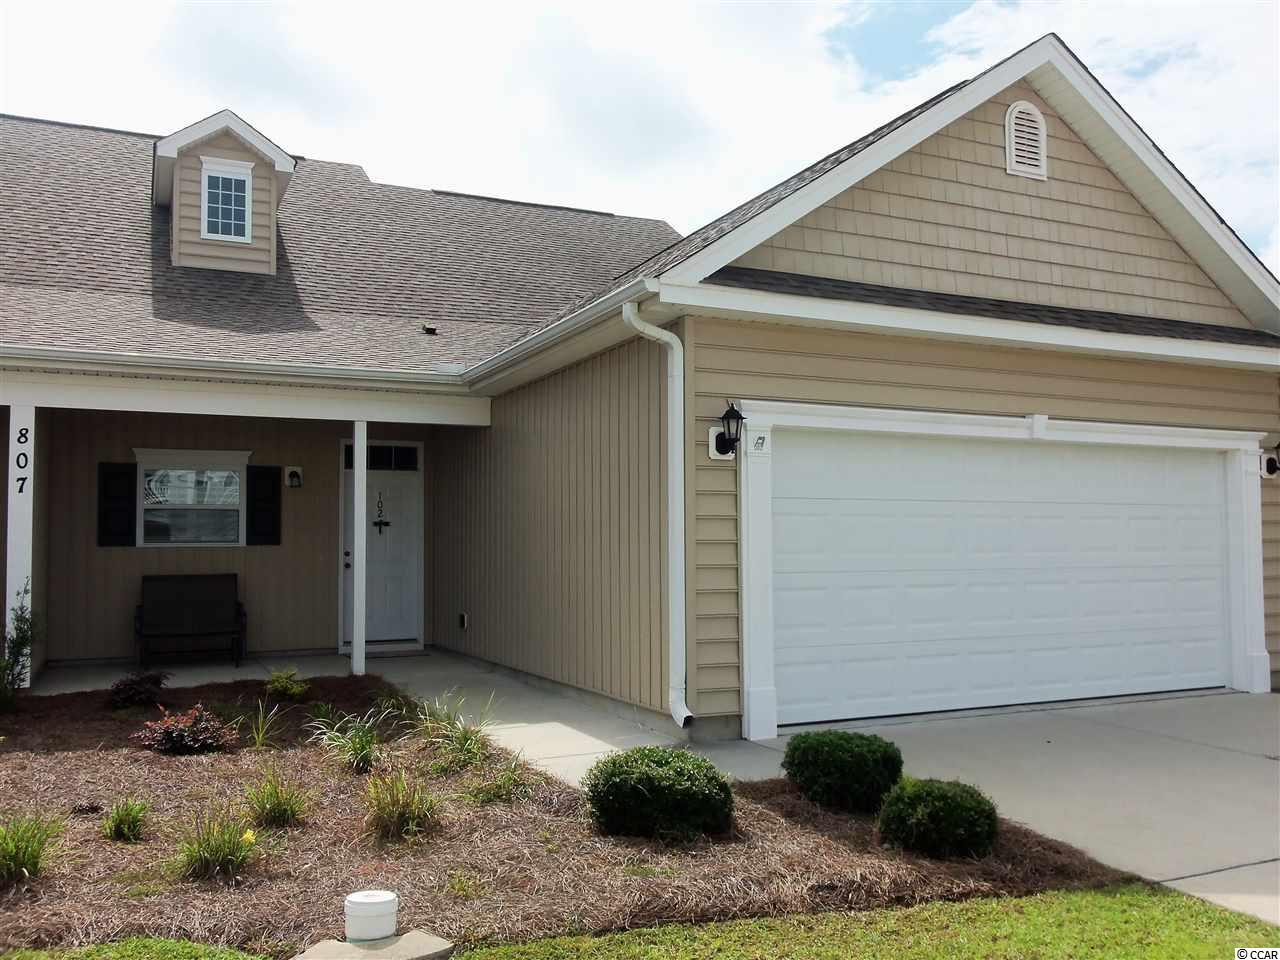 1/2 Duplex MLS:1721403 Marcliffe West at Blackmoor  807 Sail Lane Murrells Inlet SC